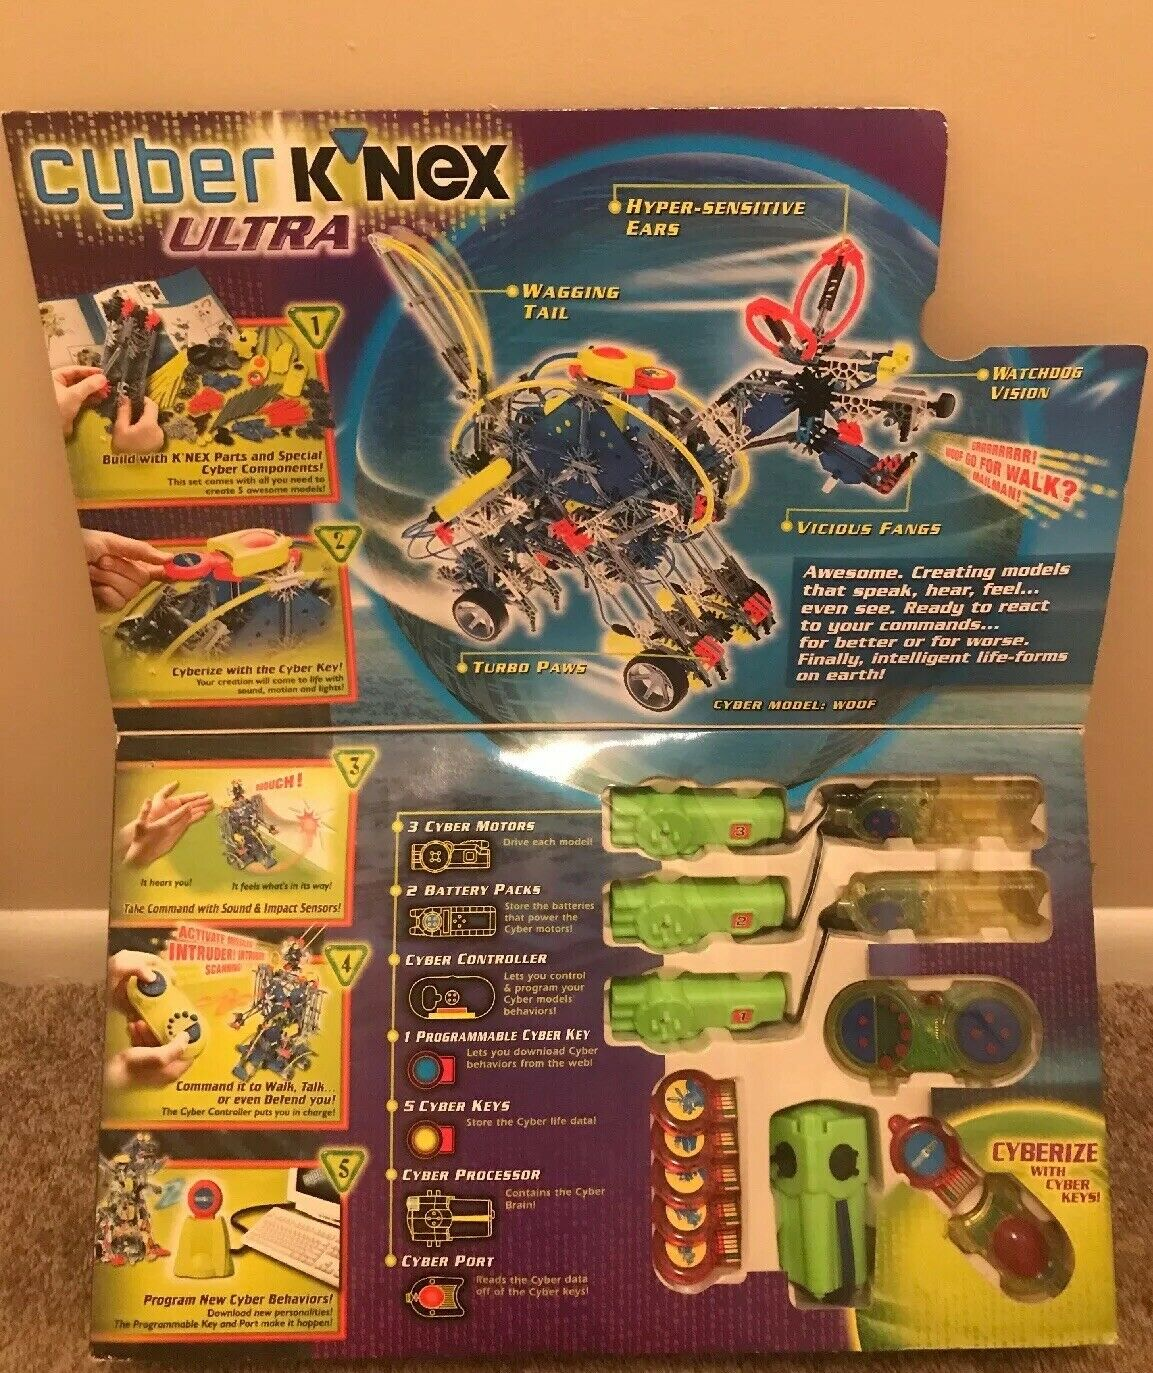 Cyber Knex Ultra Robot Kit Full Set In A Box With Manual NEVER OPENED